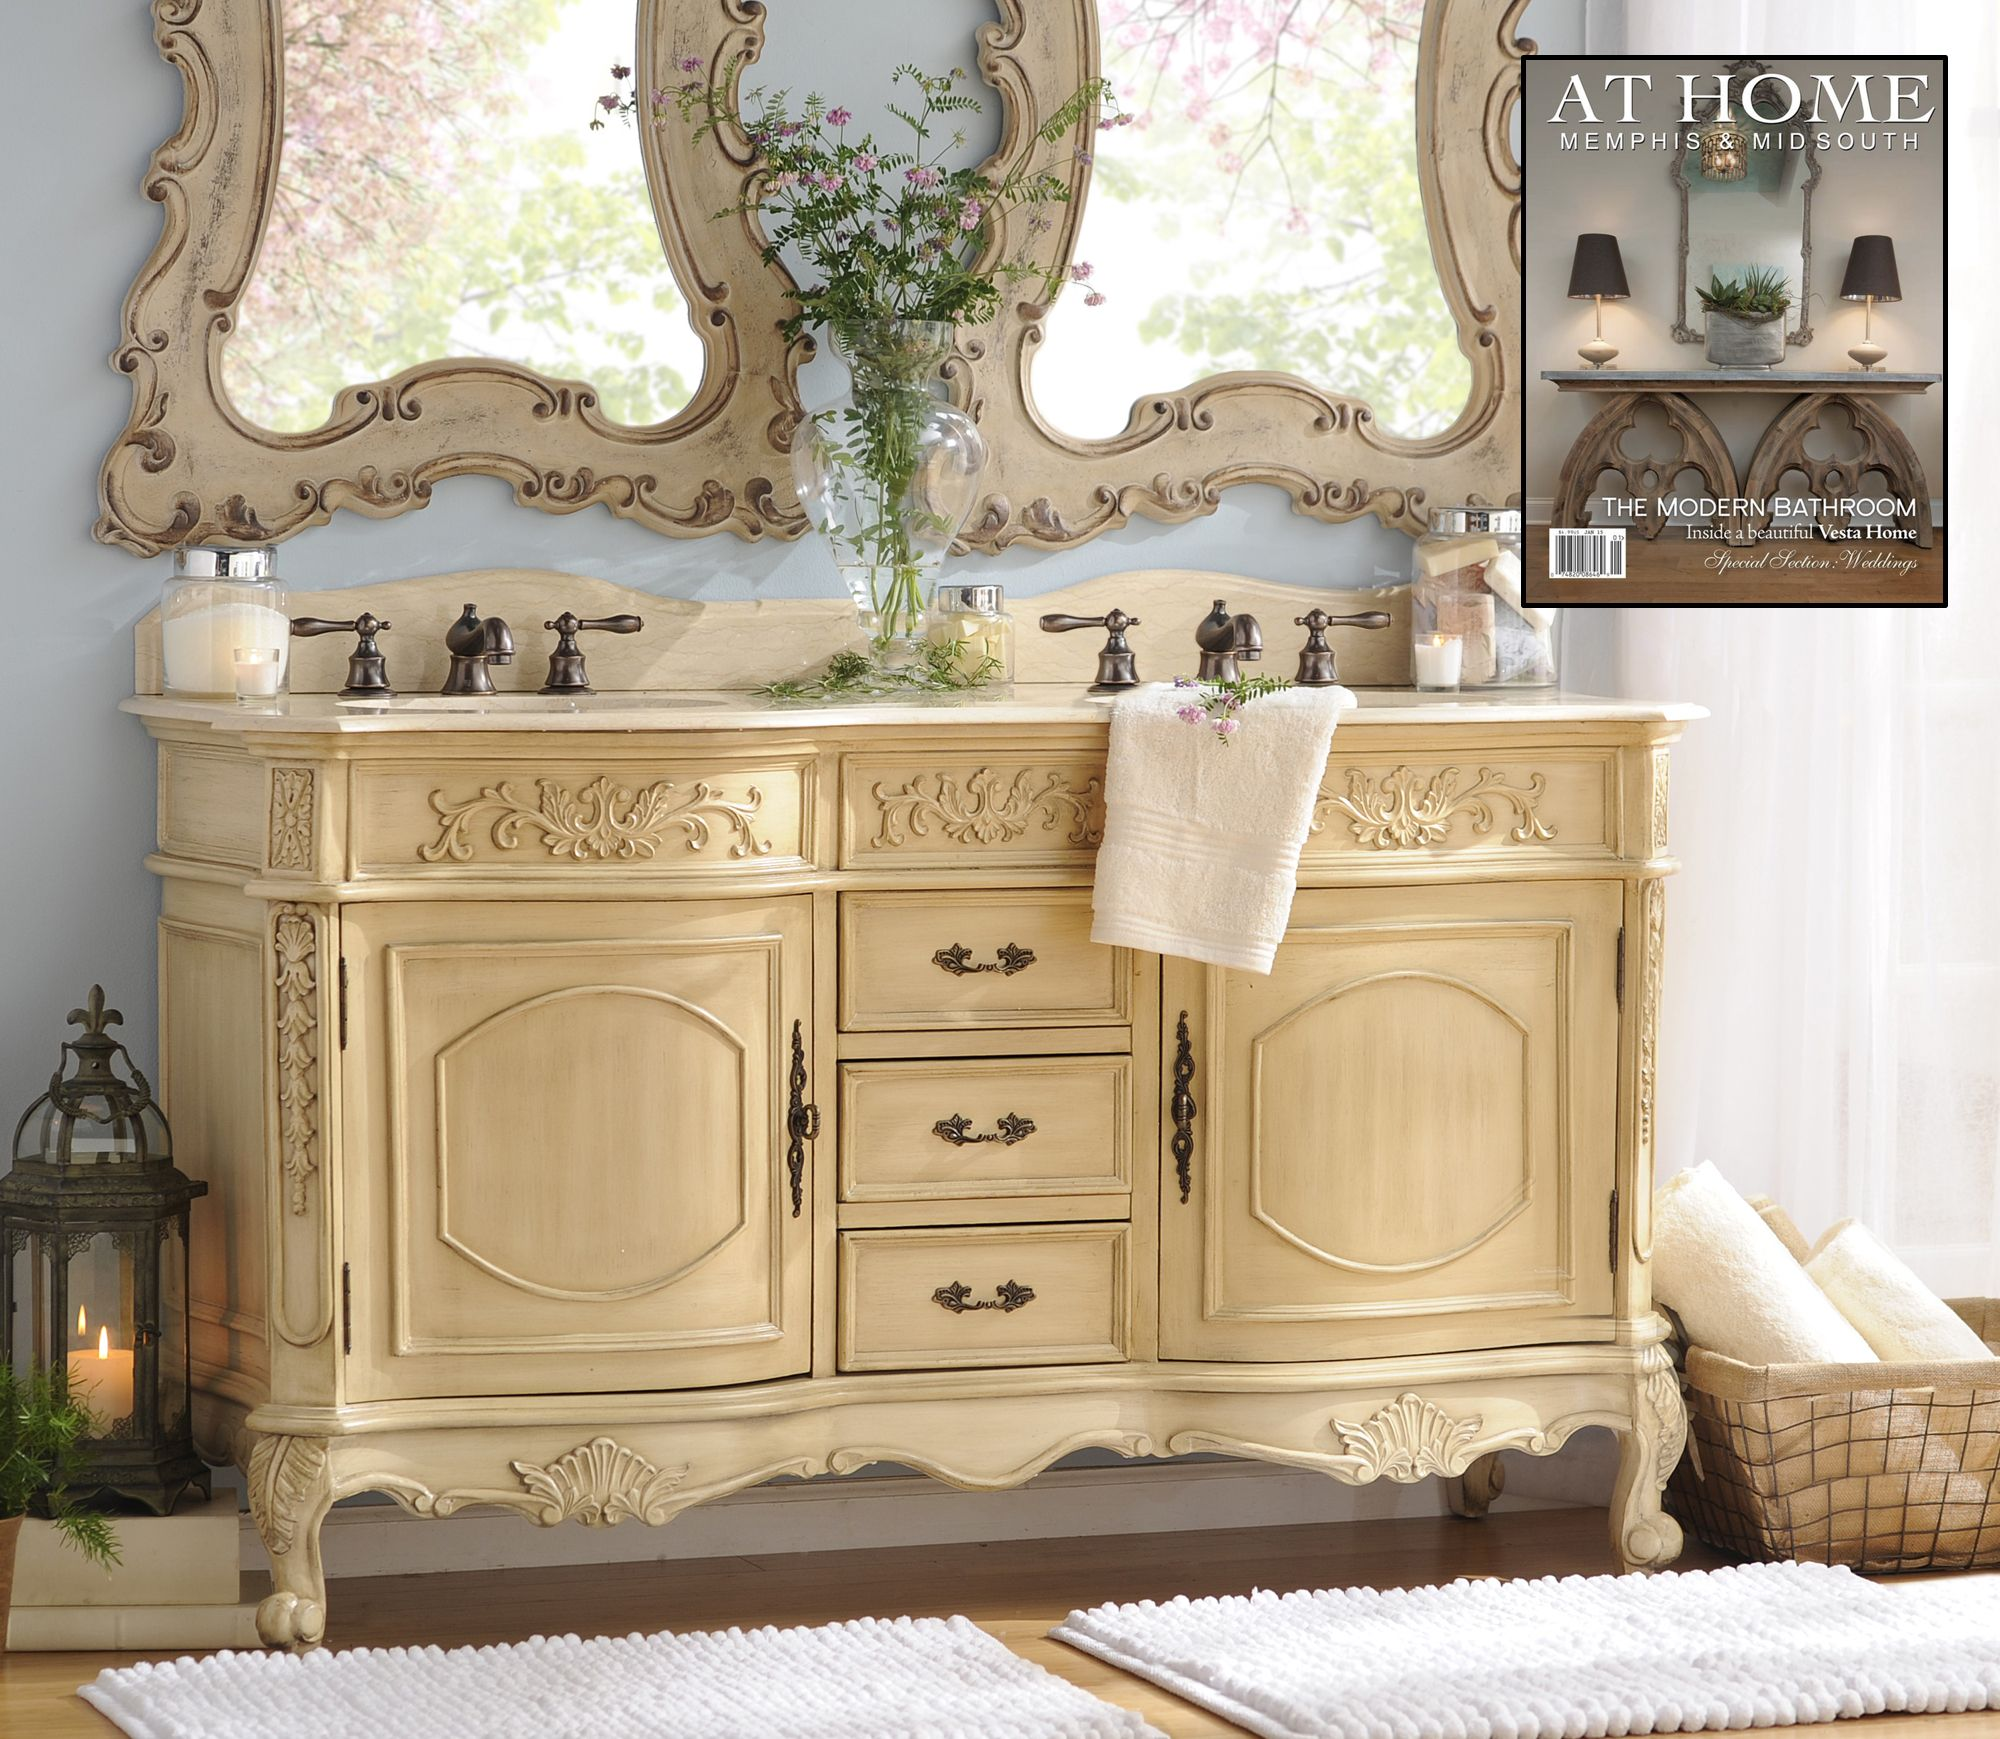 Our Ivory Sinclair Double Vanity Sink was featured in At Home Memphis & Mid South's January 2015 issue! This addition will really bring charm and elegance to your bathroom.